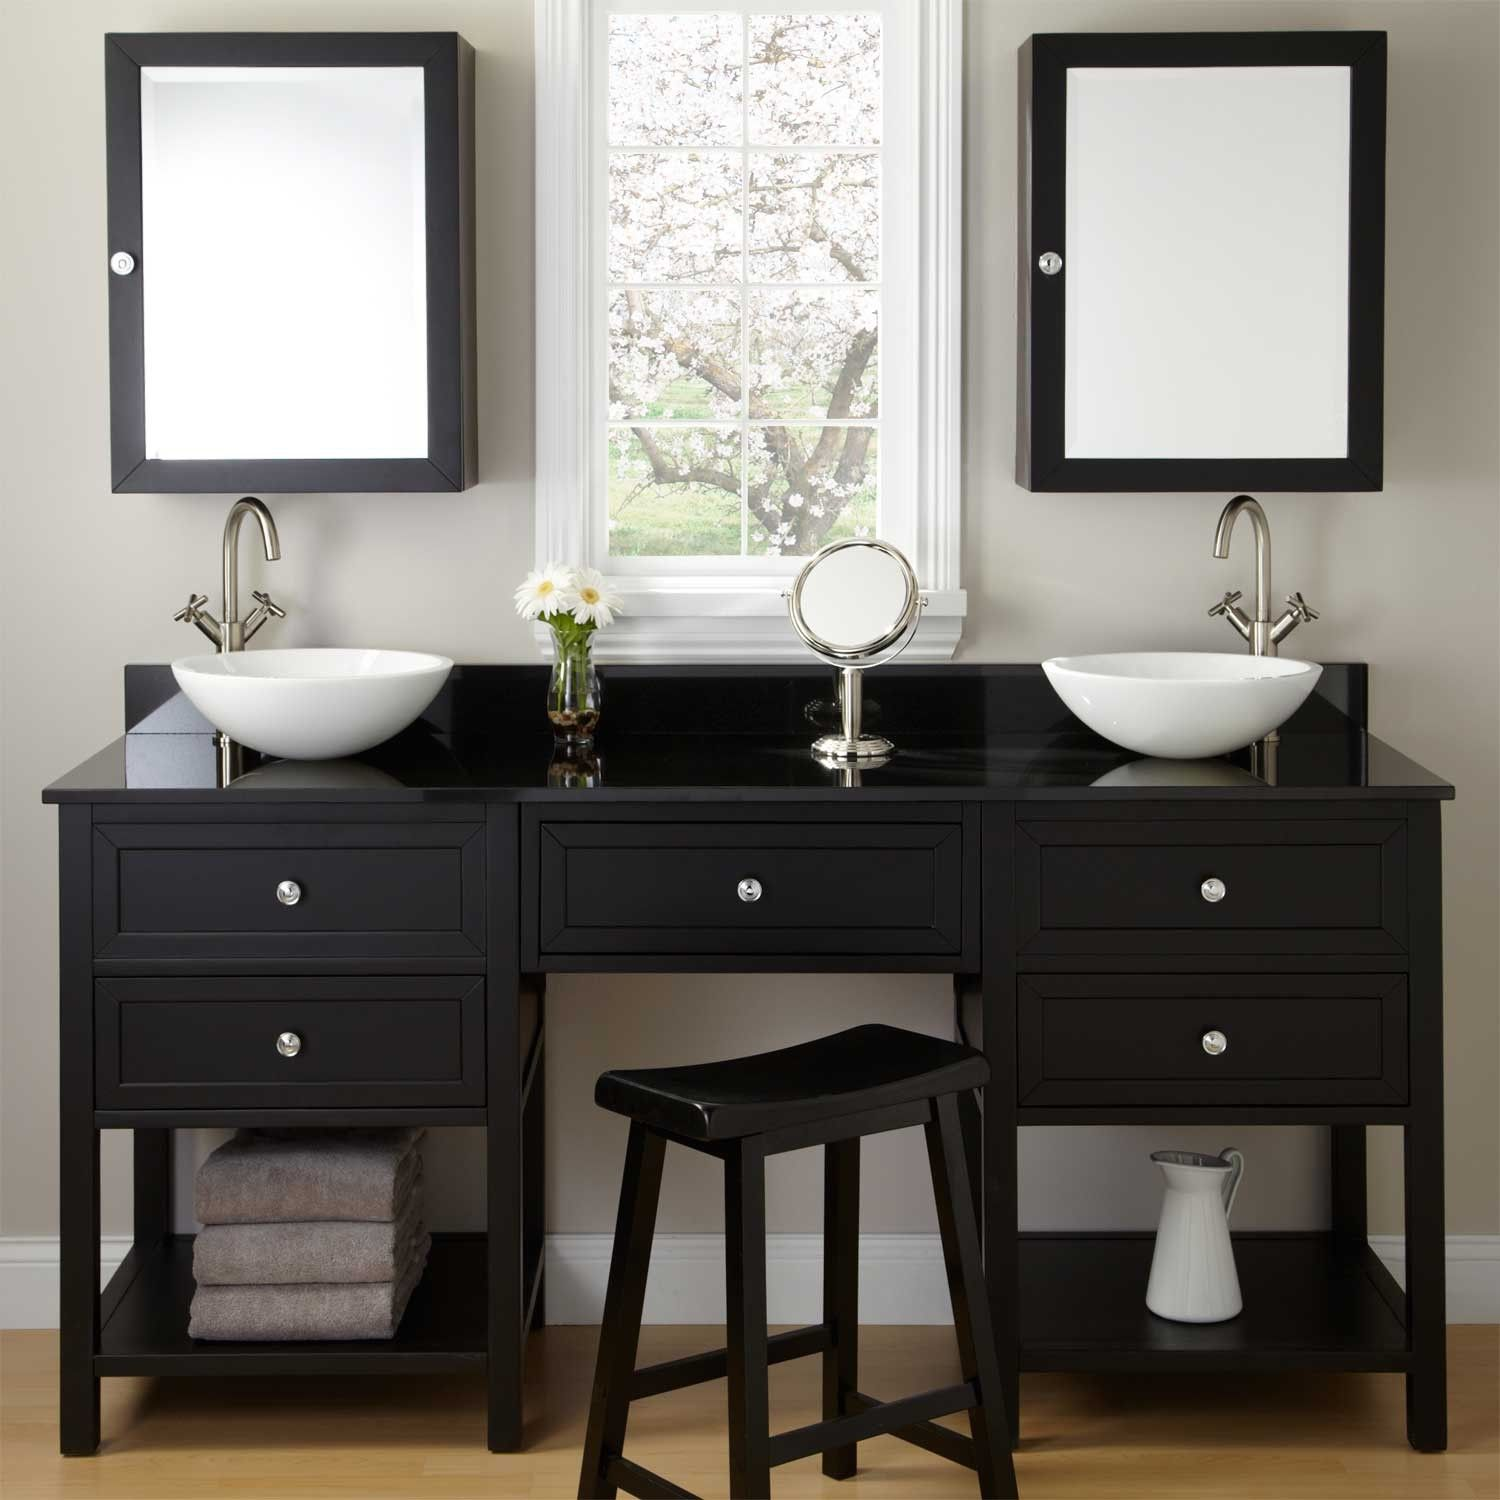 Double Bowl Sink Vanity.72 Taren Black Double Vessel Sink Vanity With Makeup Area